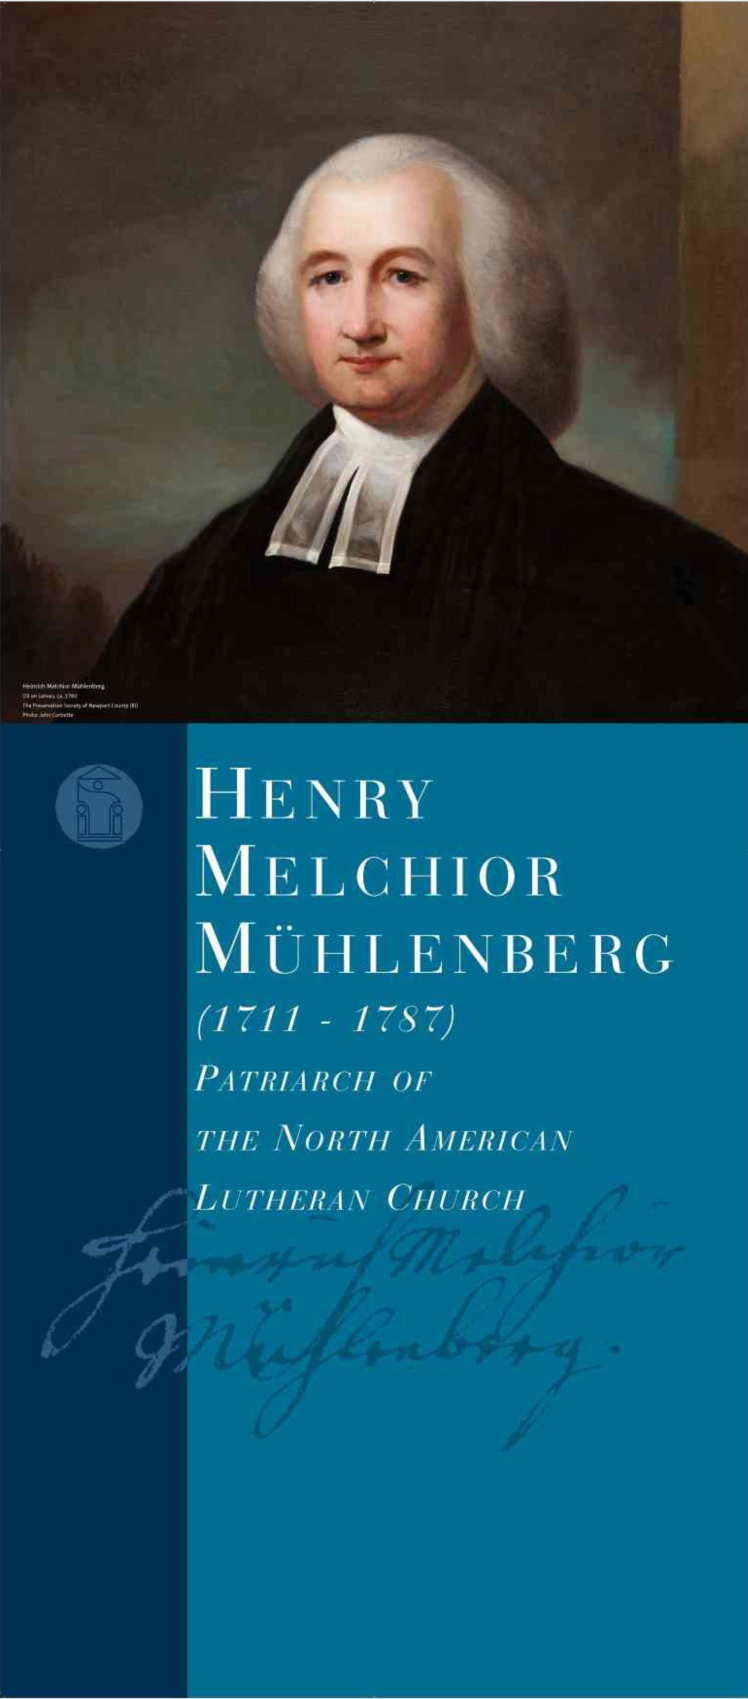 Concordia Historical Institute to host Muehlenberg exhibit – April 26-May 20, 2011